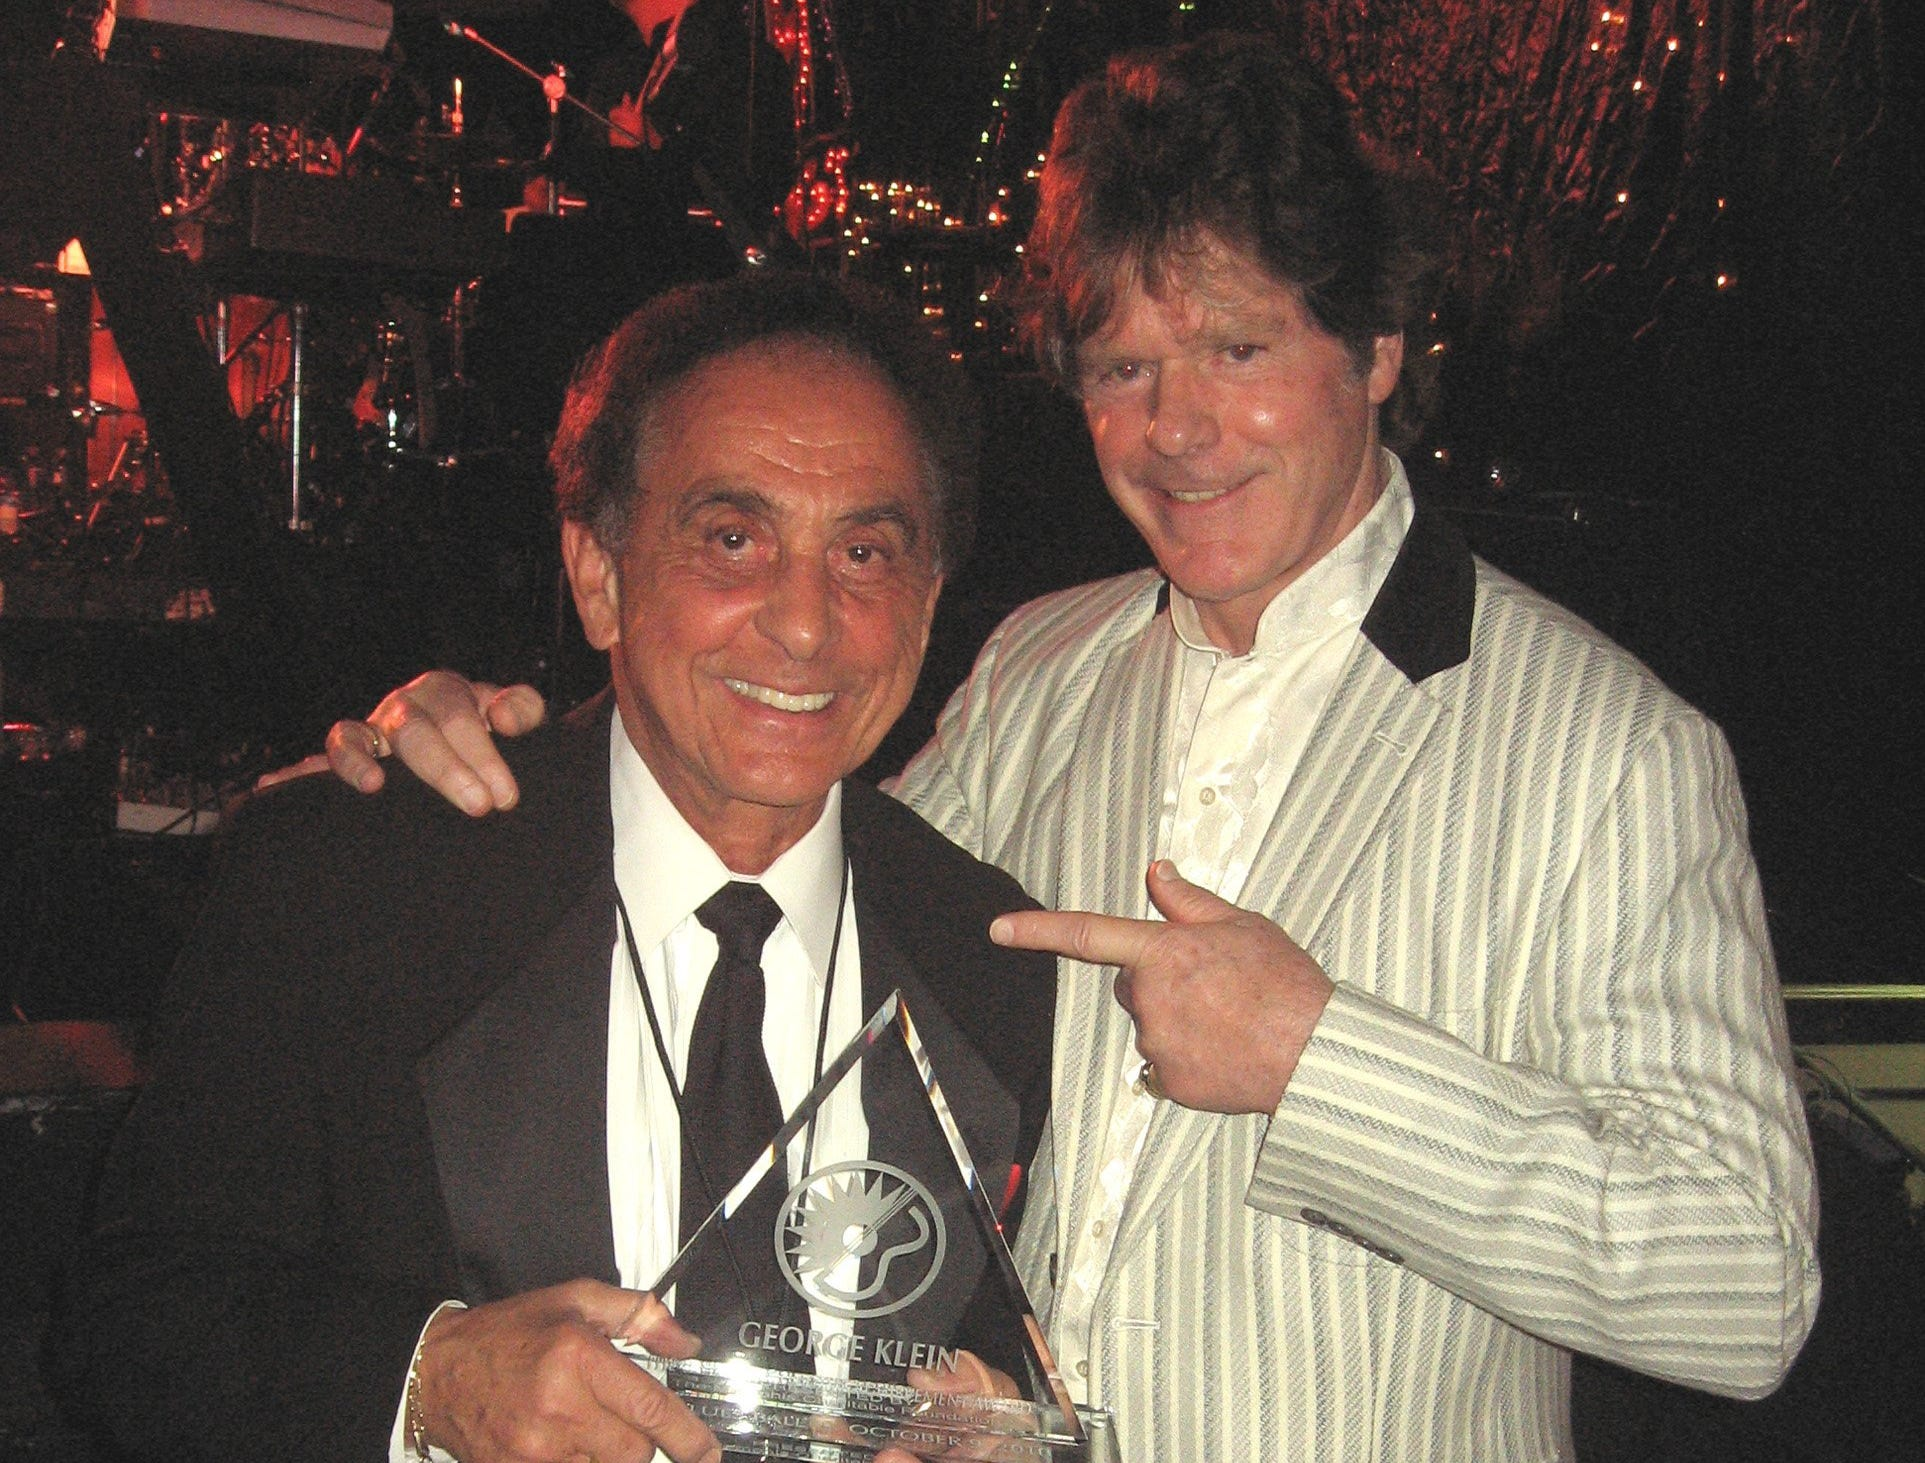 Oct. 9, 2010 - George Klein, left, was given the Lifetime Achievement Award Saturday night at The Blues Ball. His long-time friend, Jerry Schilling, presented the award.